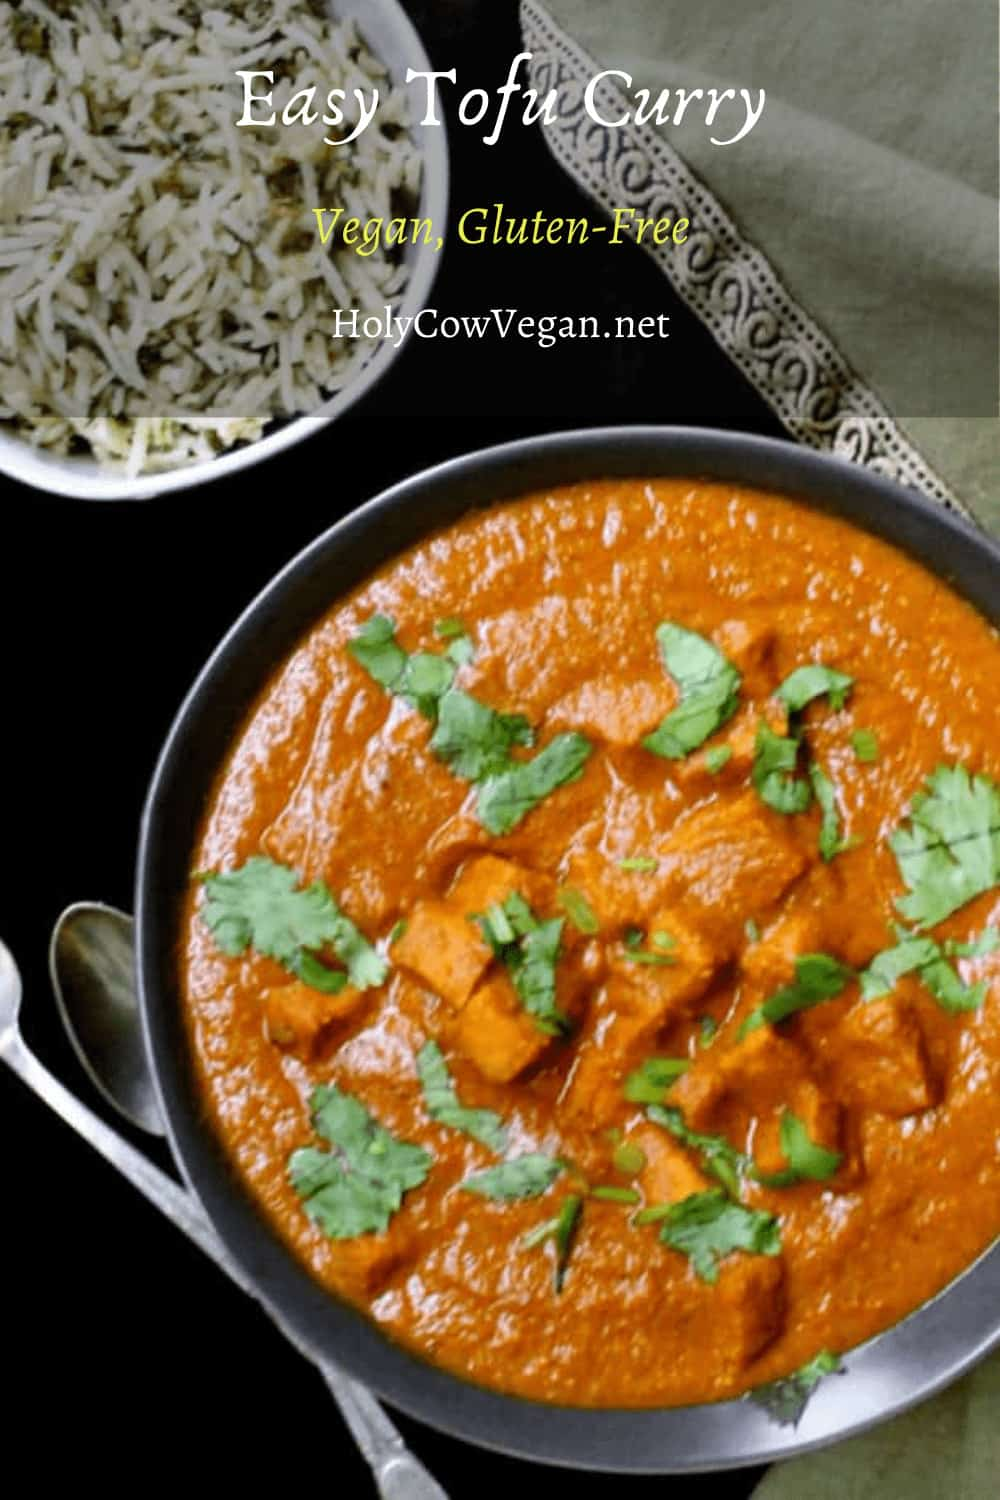 Tofu Curry, a quick and easy weeknight dish. Sere with rice or with a flatbread like naan, or just any crusty bread. Seen in the photo with a cilantro garnish, a bowl of rice and a green napkin.